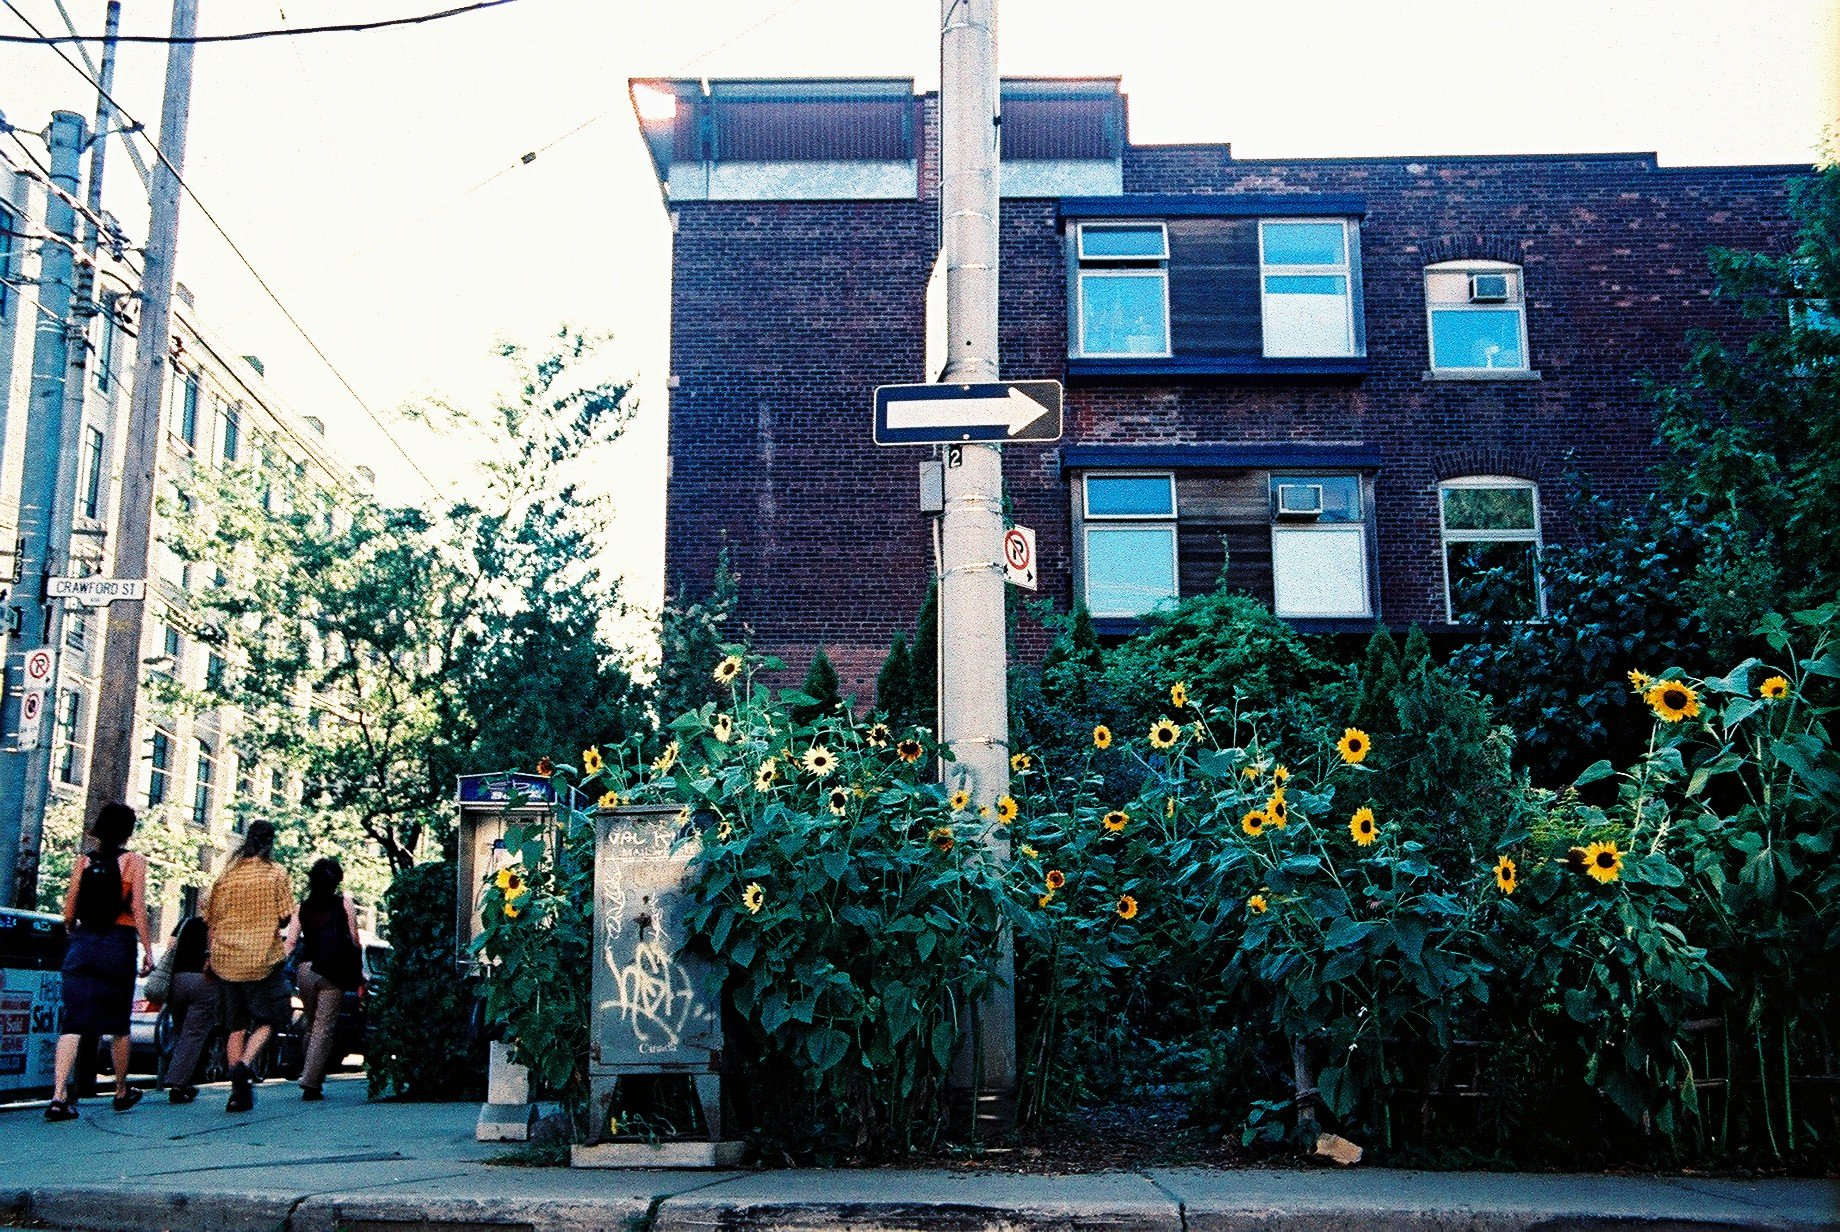 Sunflowers and phone booth outside 900 Queen Street West, early 2000s